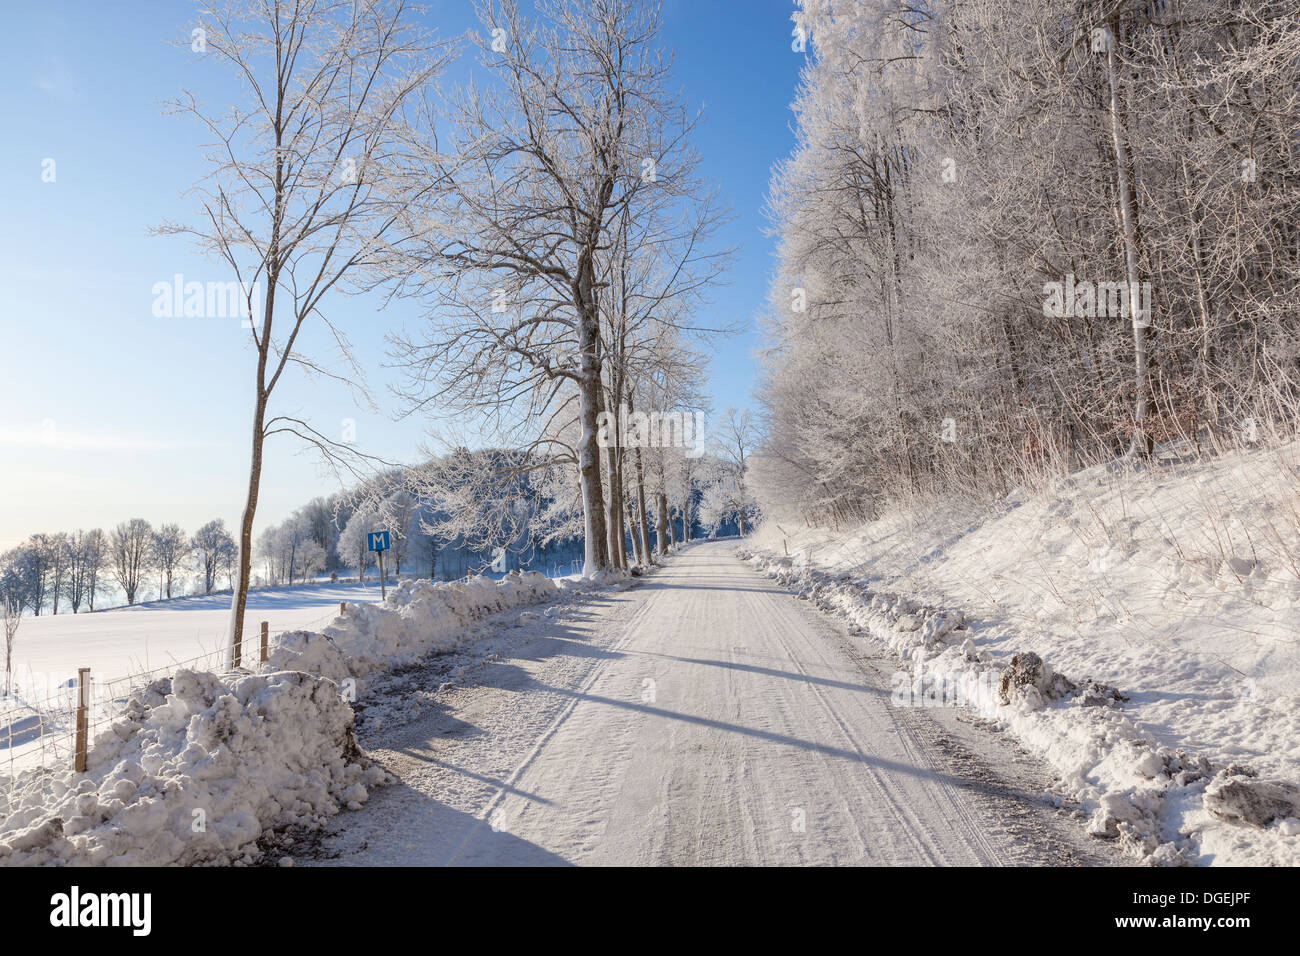 Country road through a wintry landscape - Stock Image